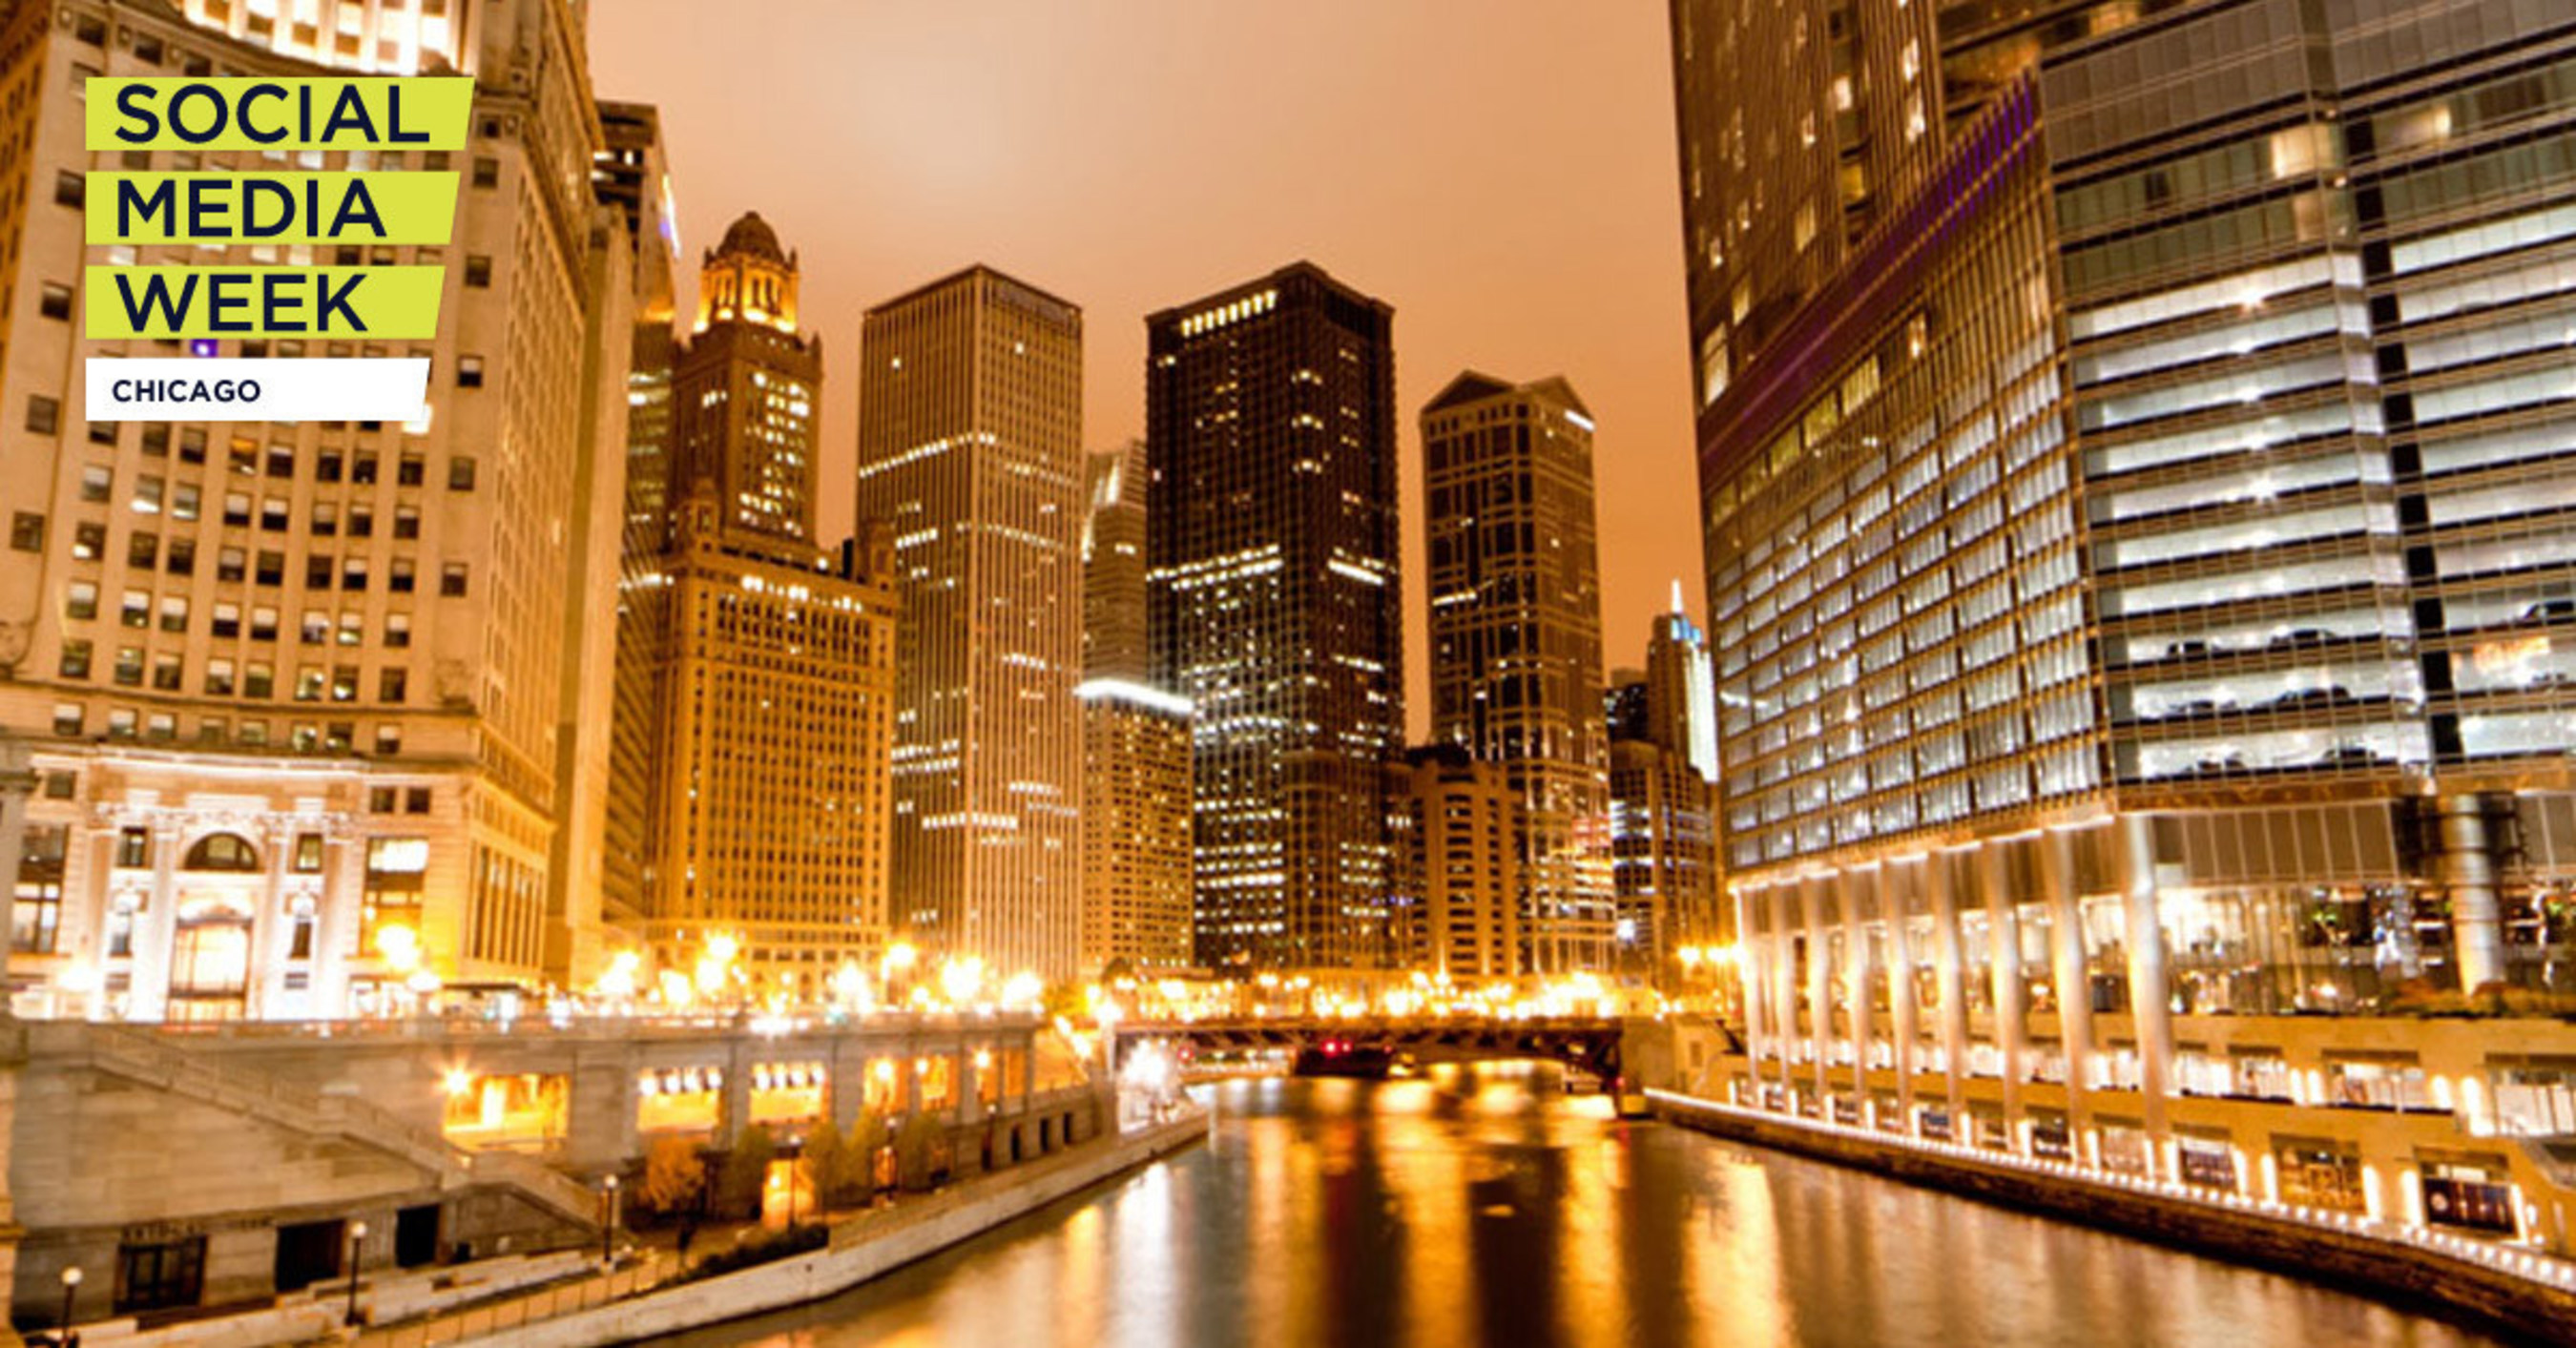 Social Media Week will be coming to Chicago November 16-20, 2015.